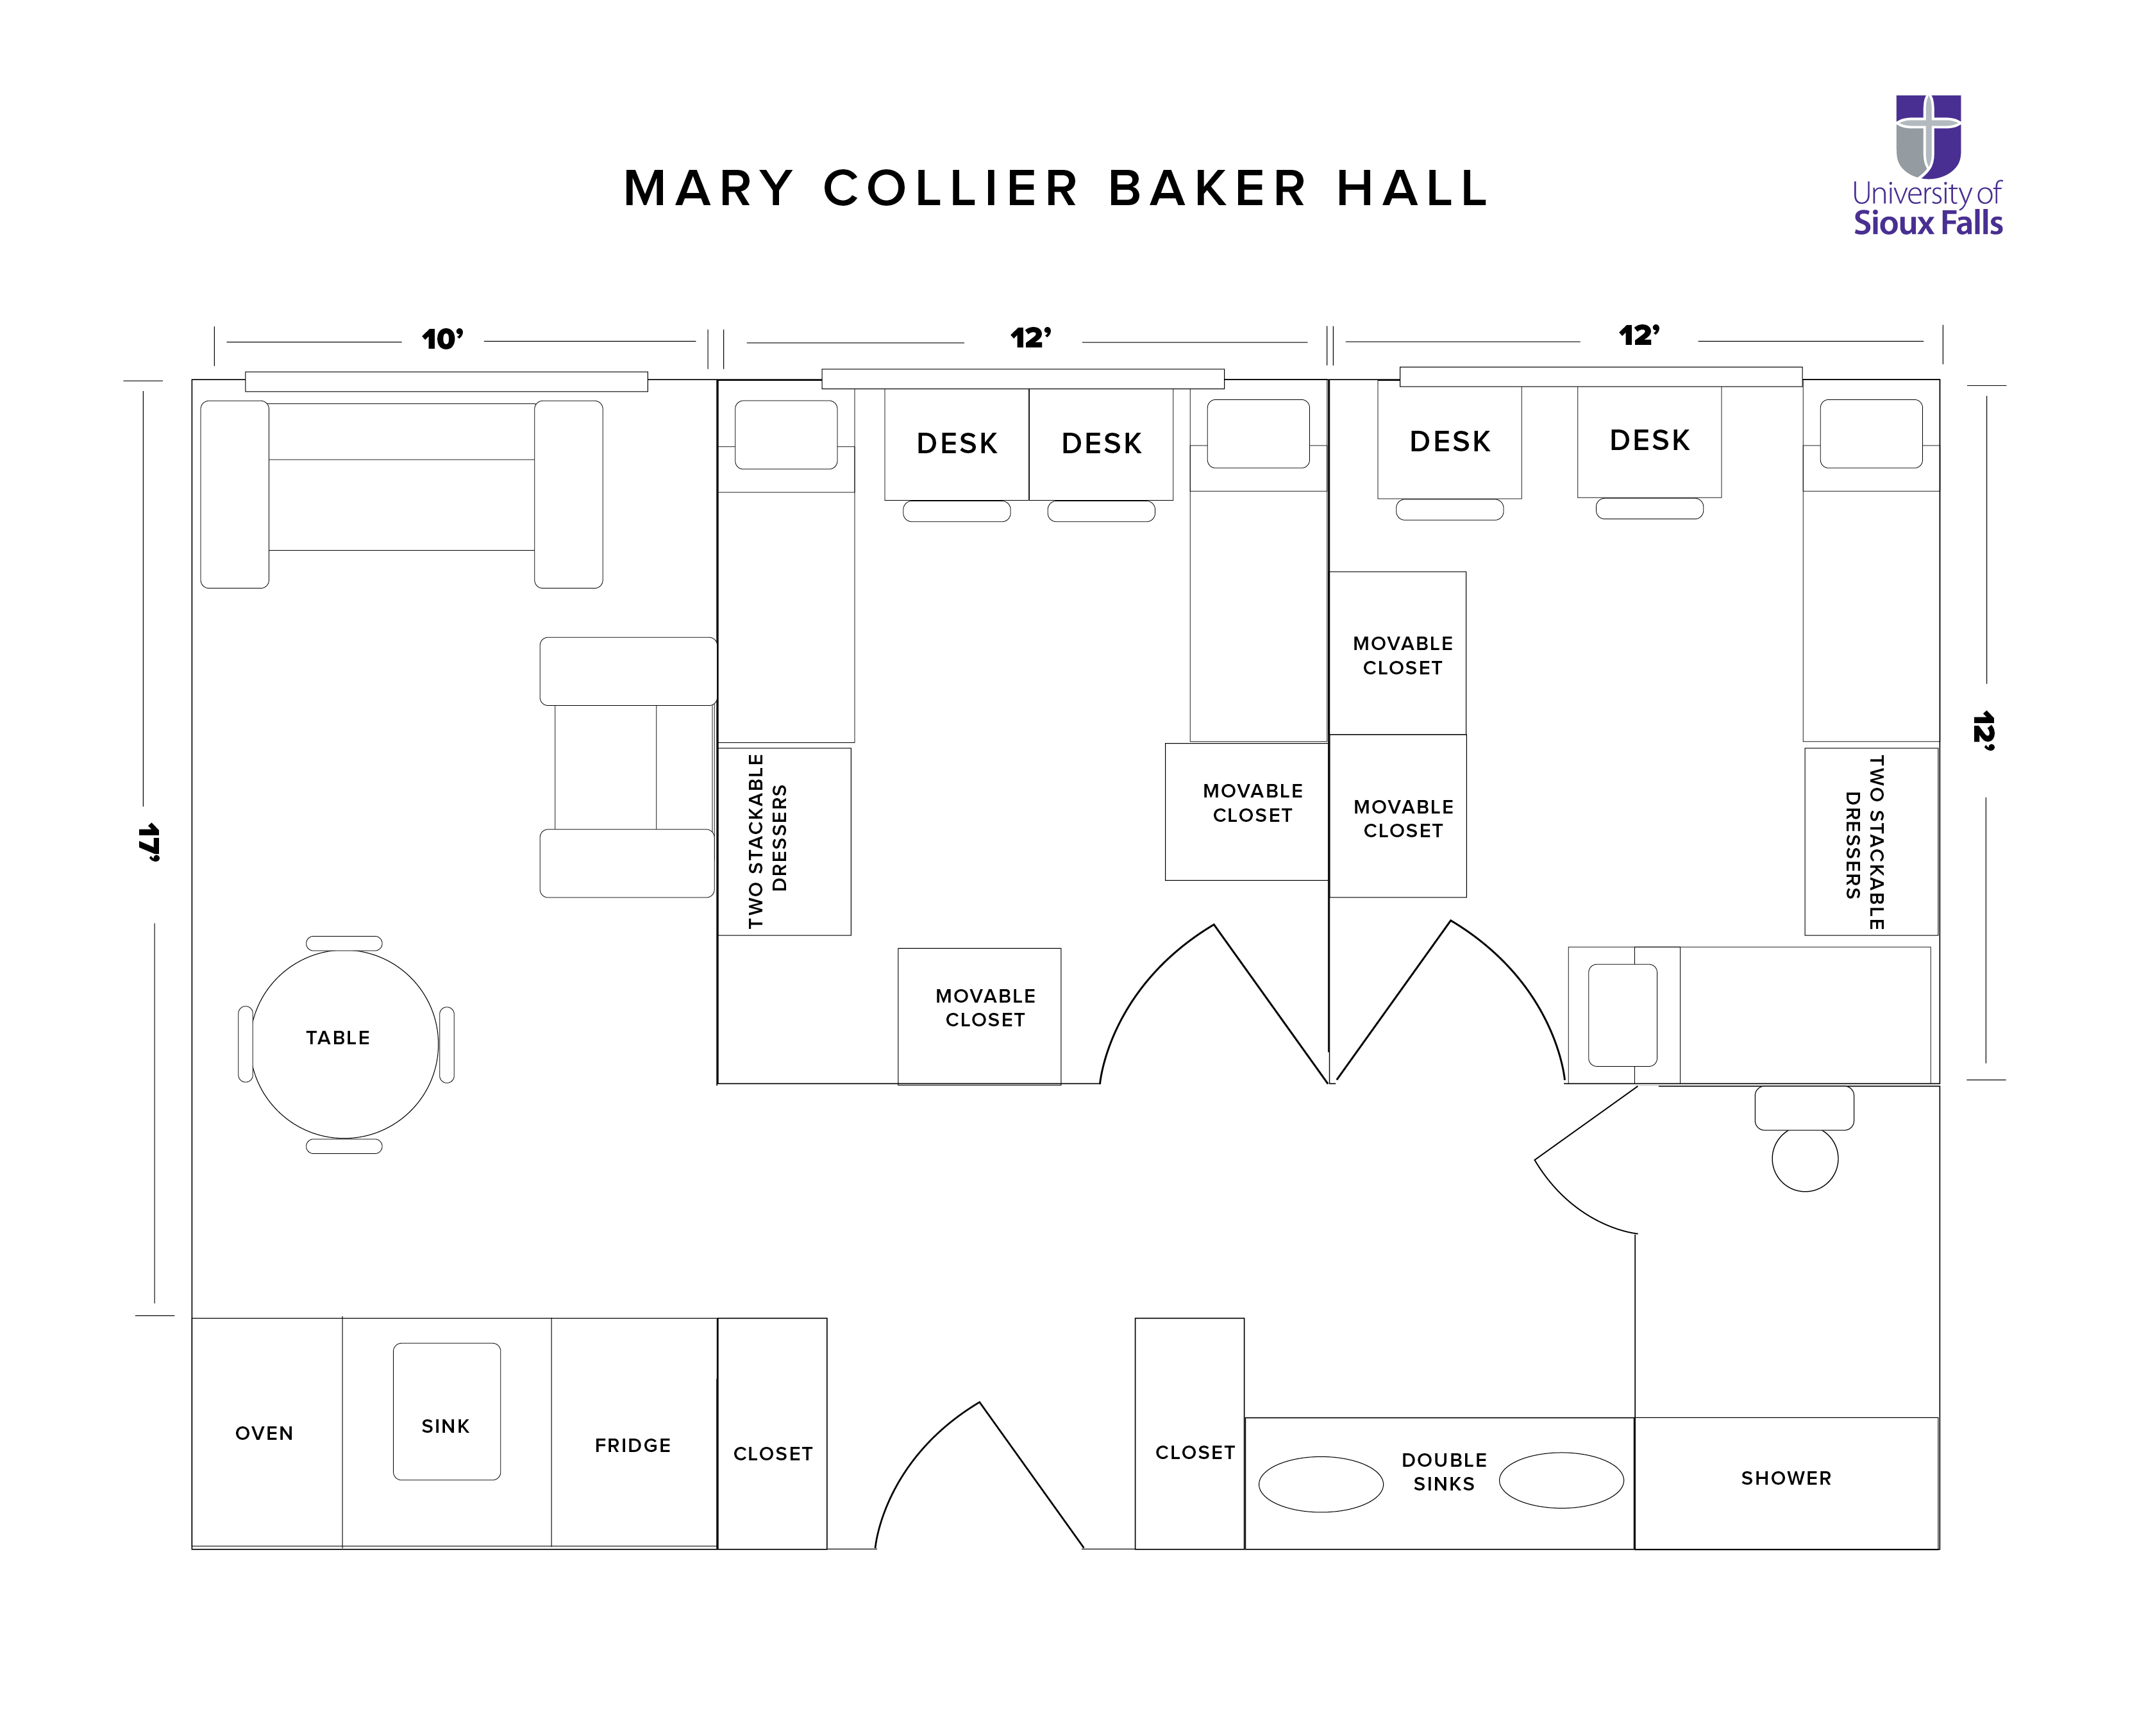 Mary Collier Baker Hall Floorplan